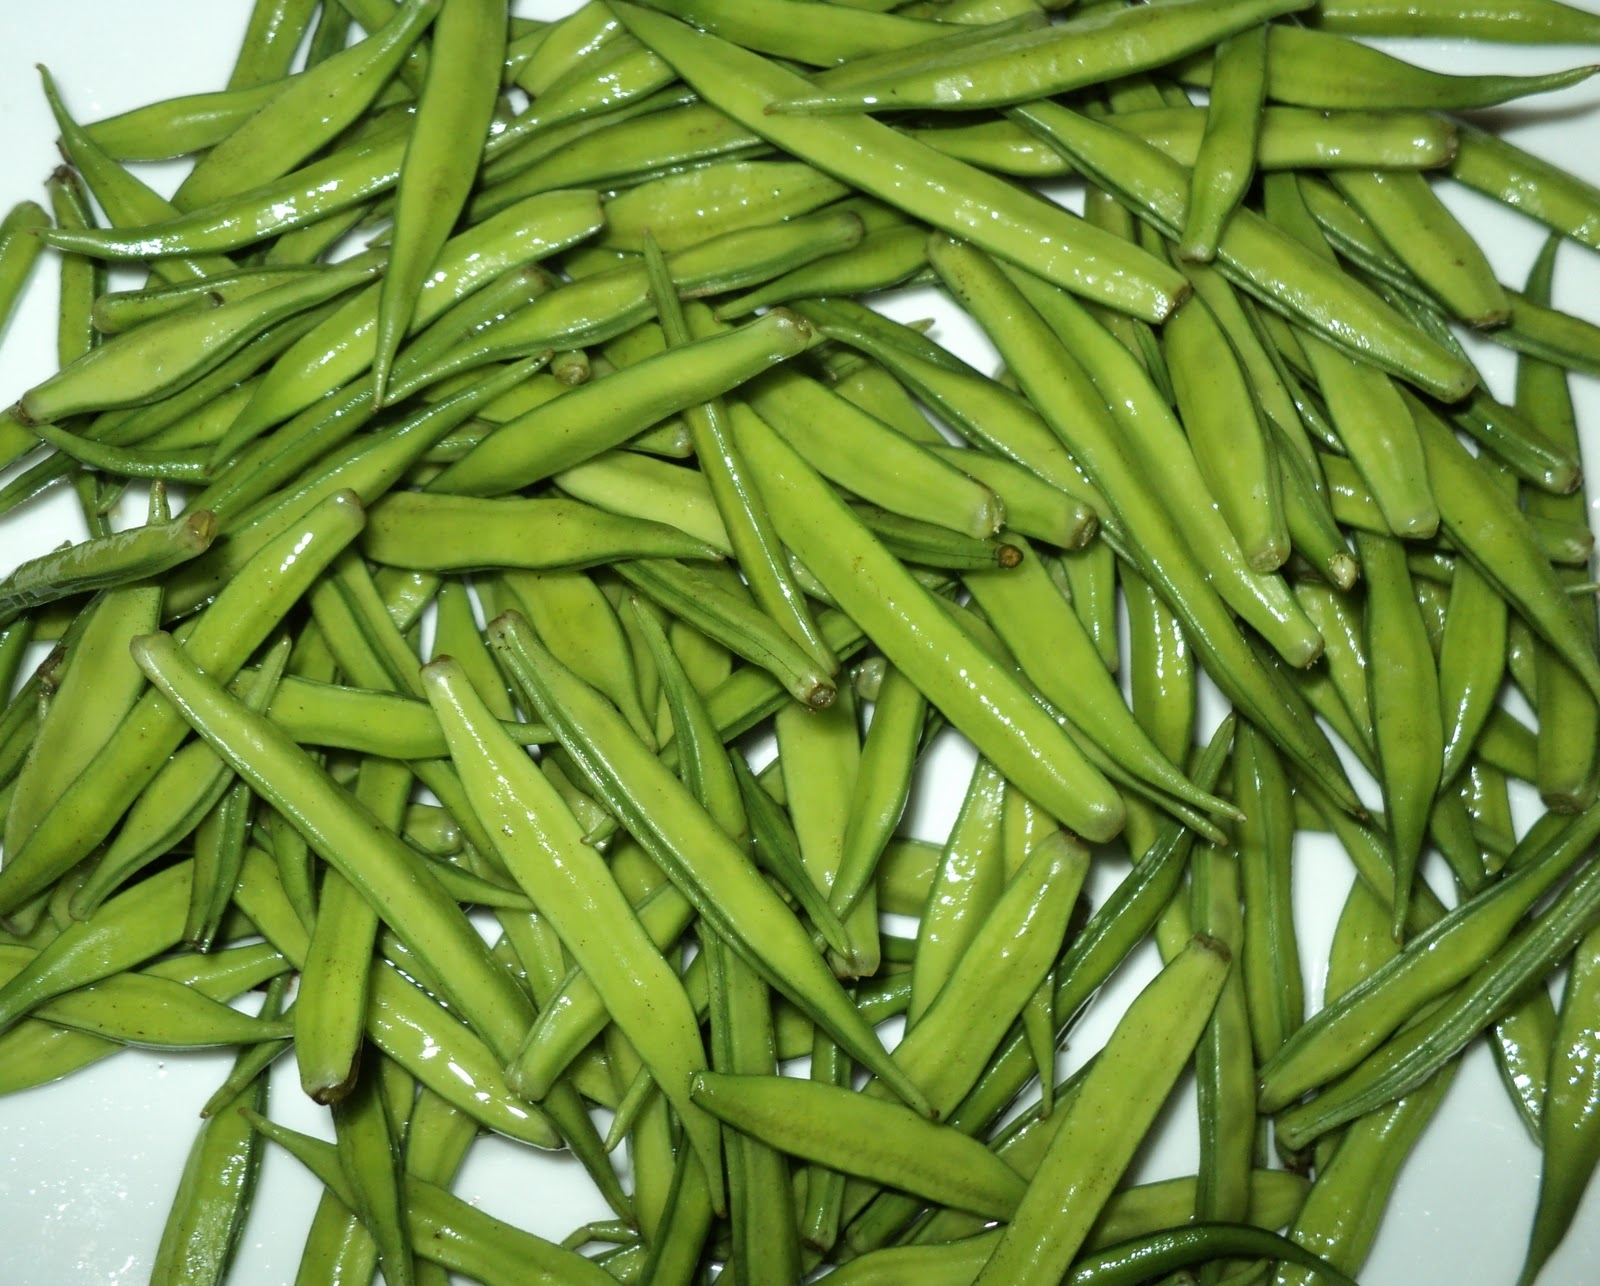 Secret Health Benefits Of Cluster Beans Revealed